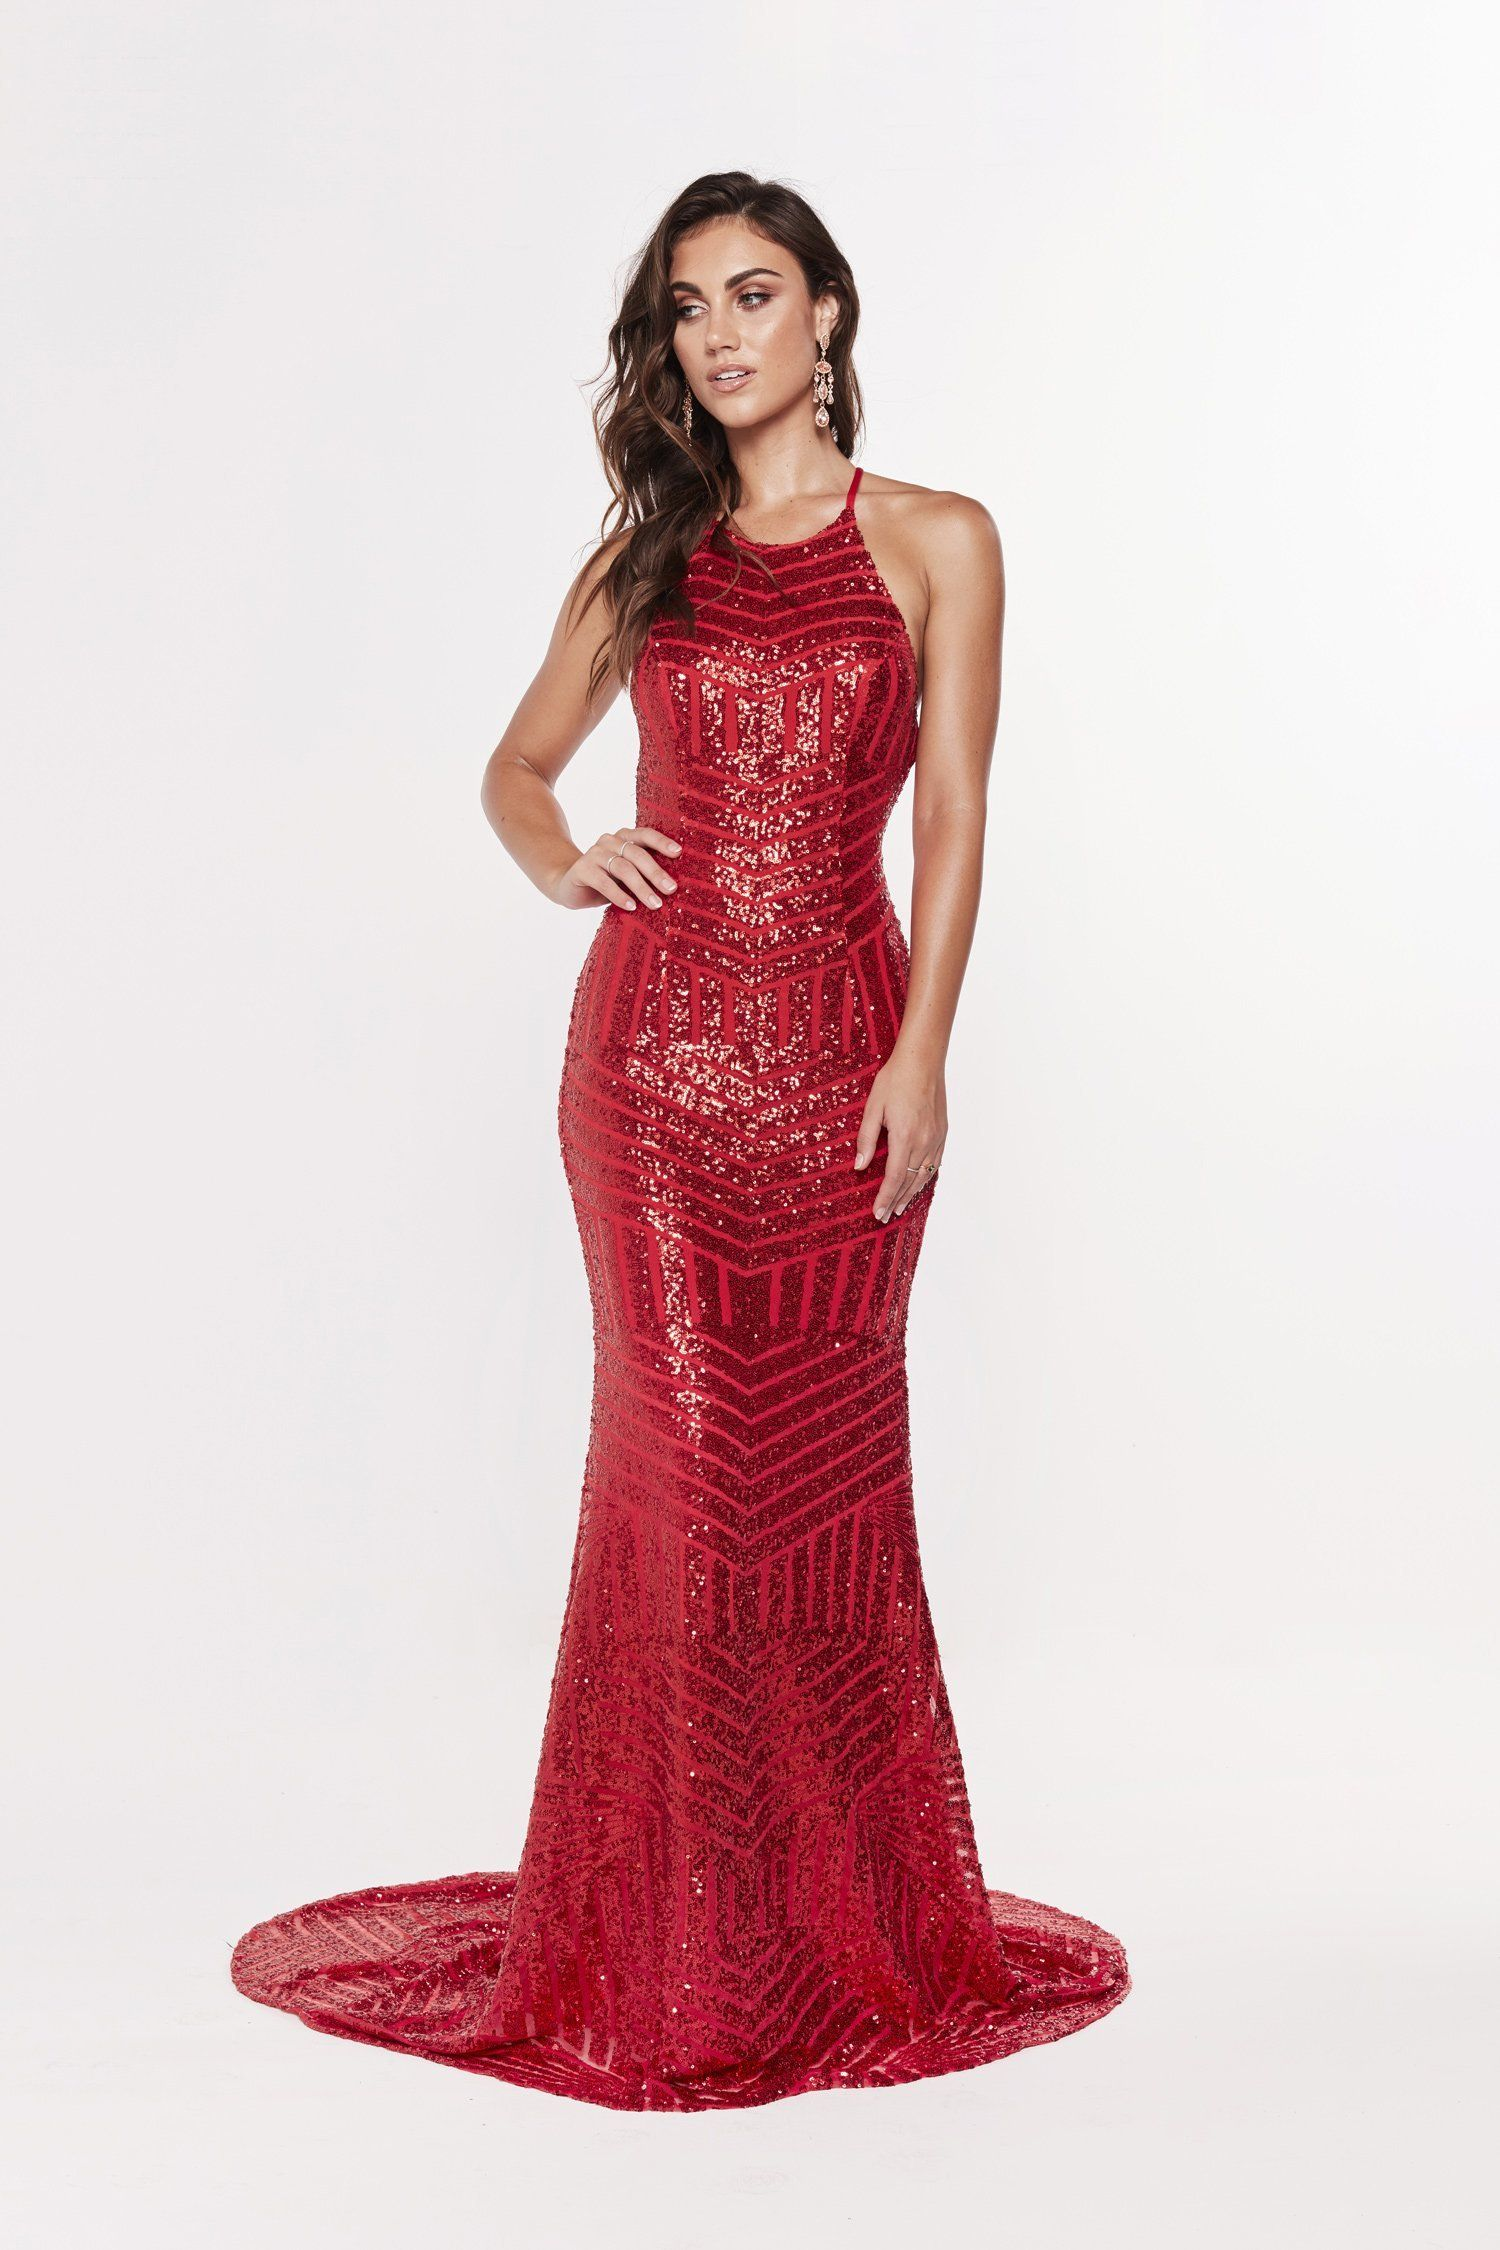 Red Sequin Prom Dress Prom Dress Short Lace Prom Dresses Long Lace Backless Prom Dresses [ 2250 x 1500 Pixel ]